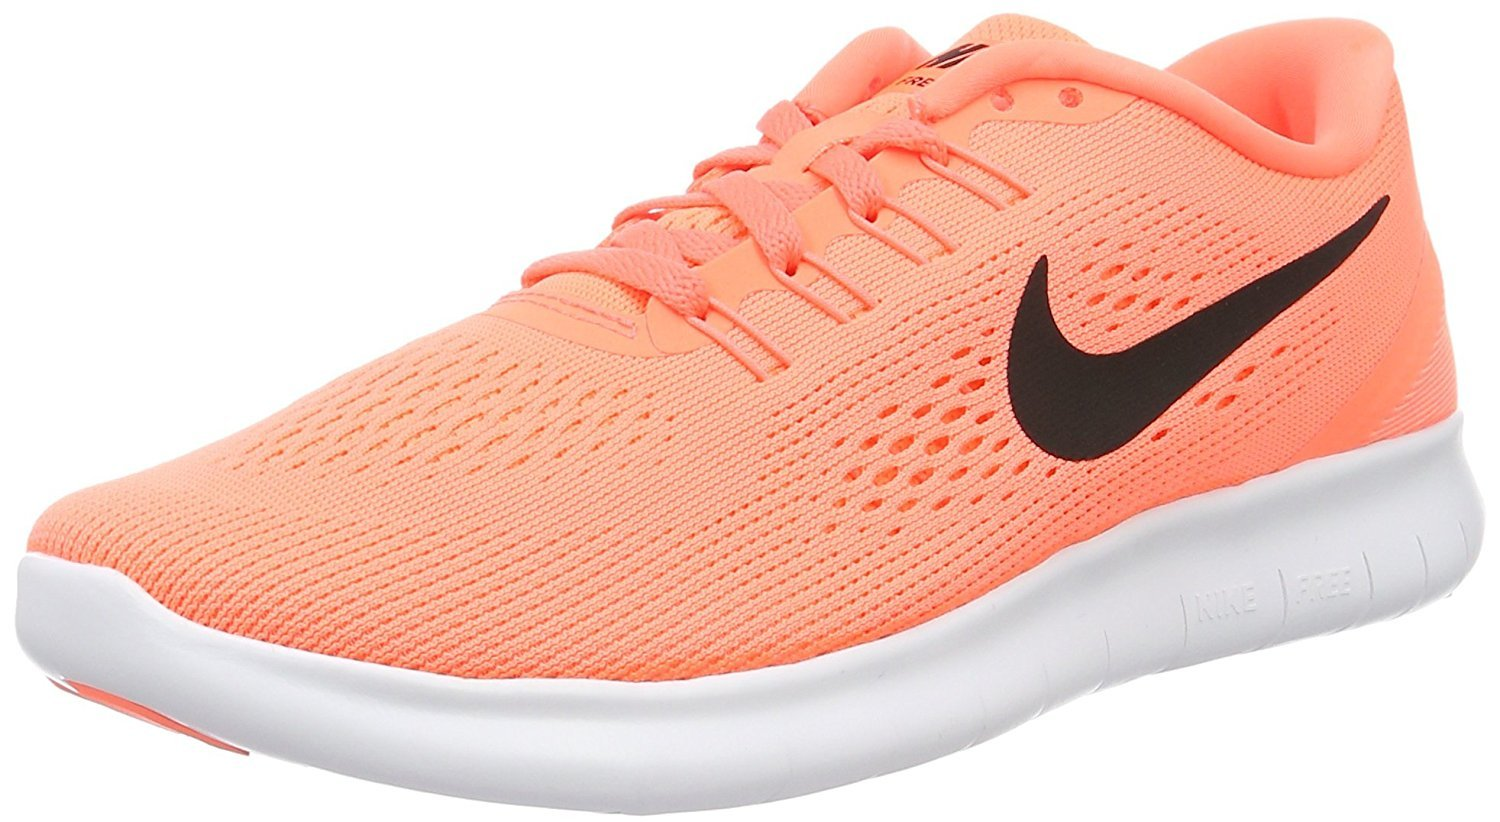 NIKE Women's Free RN Running Shoes B00IFOU0MG 10 B(M) US|Bright Mango/Black